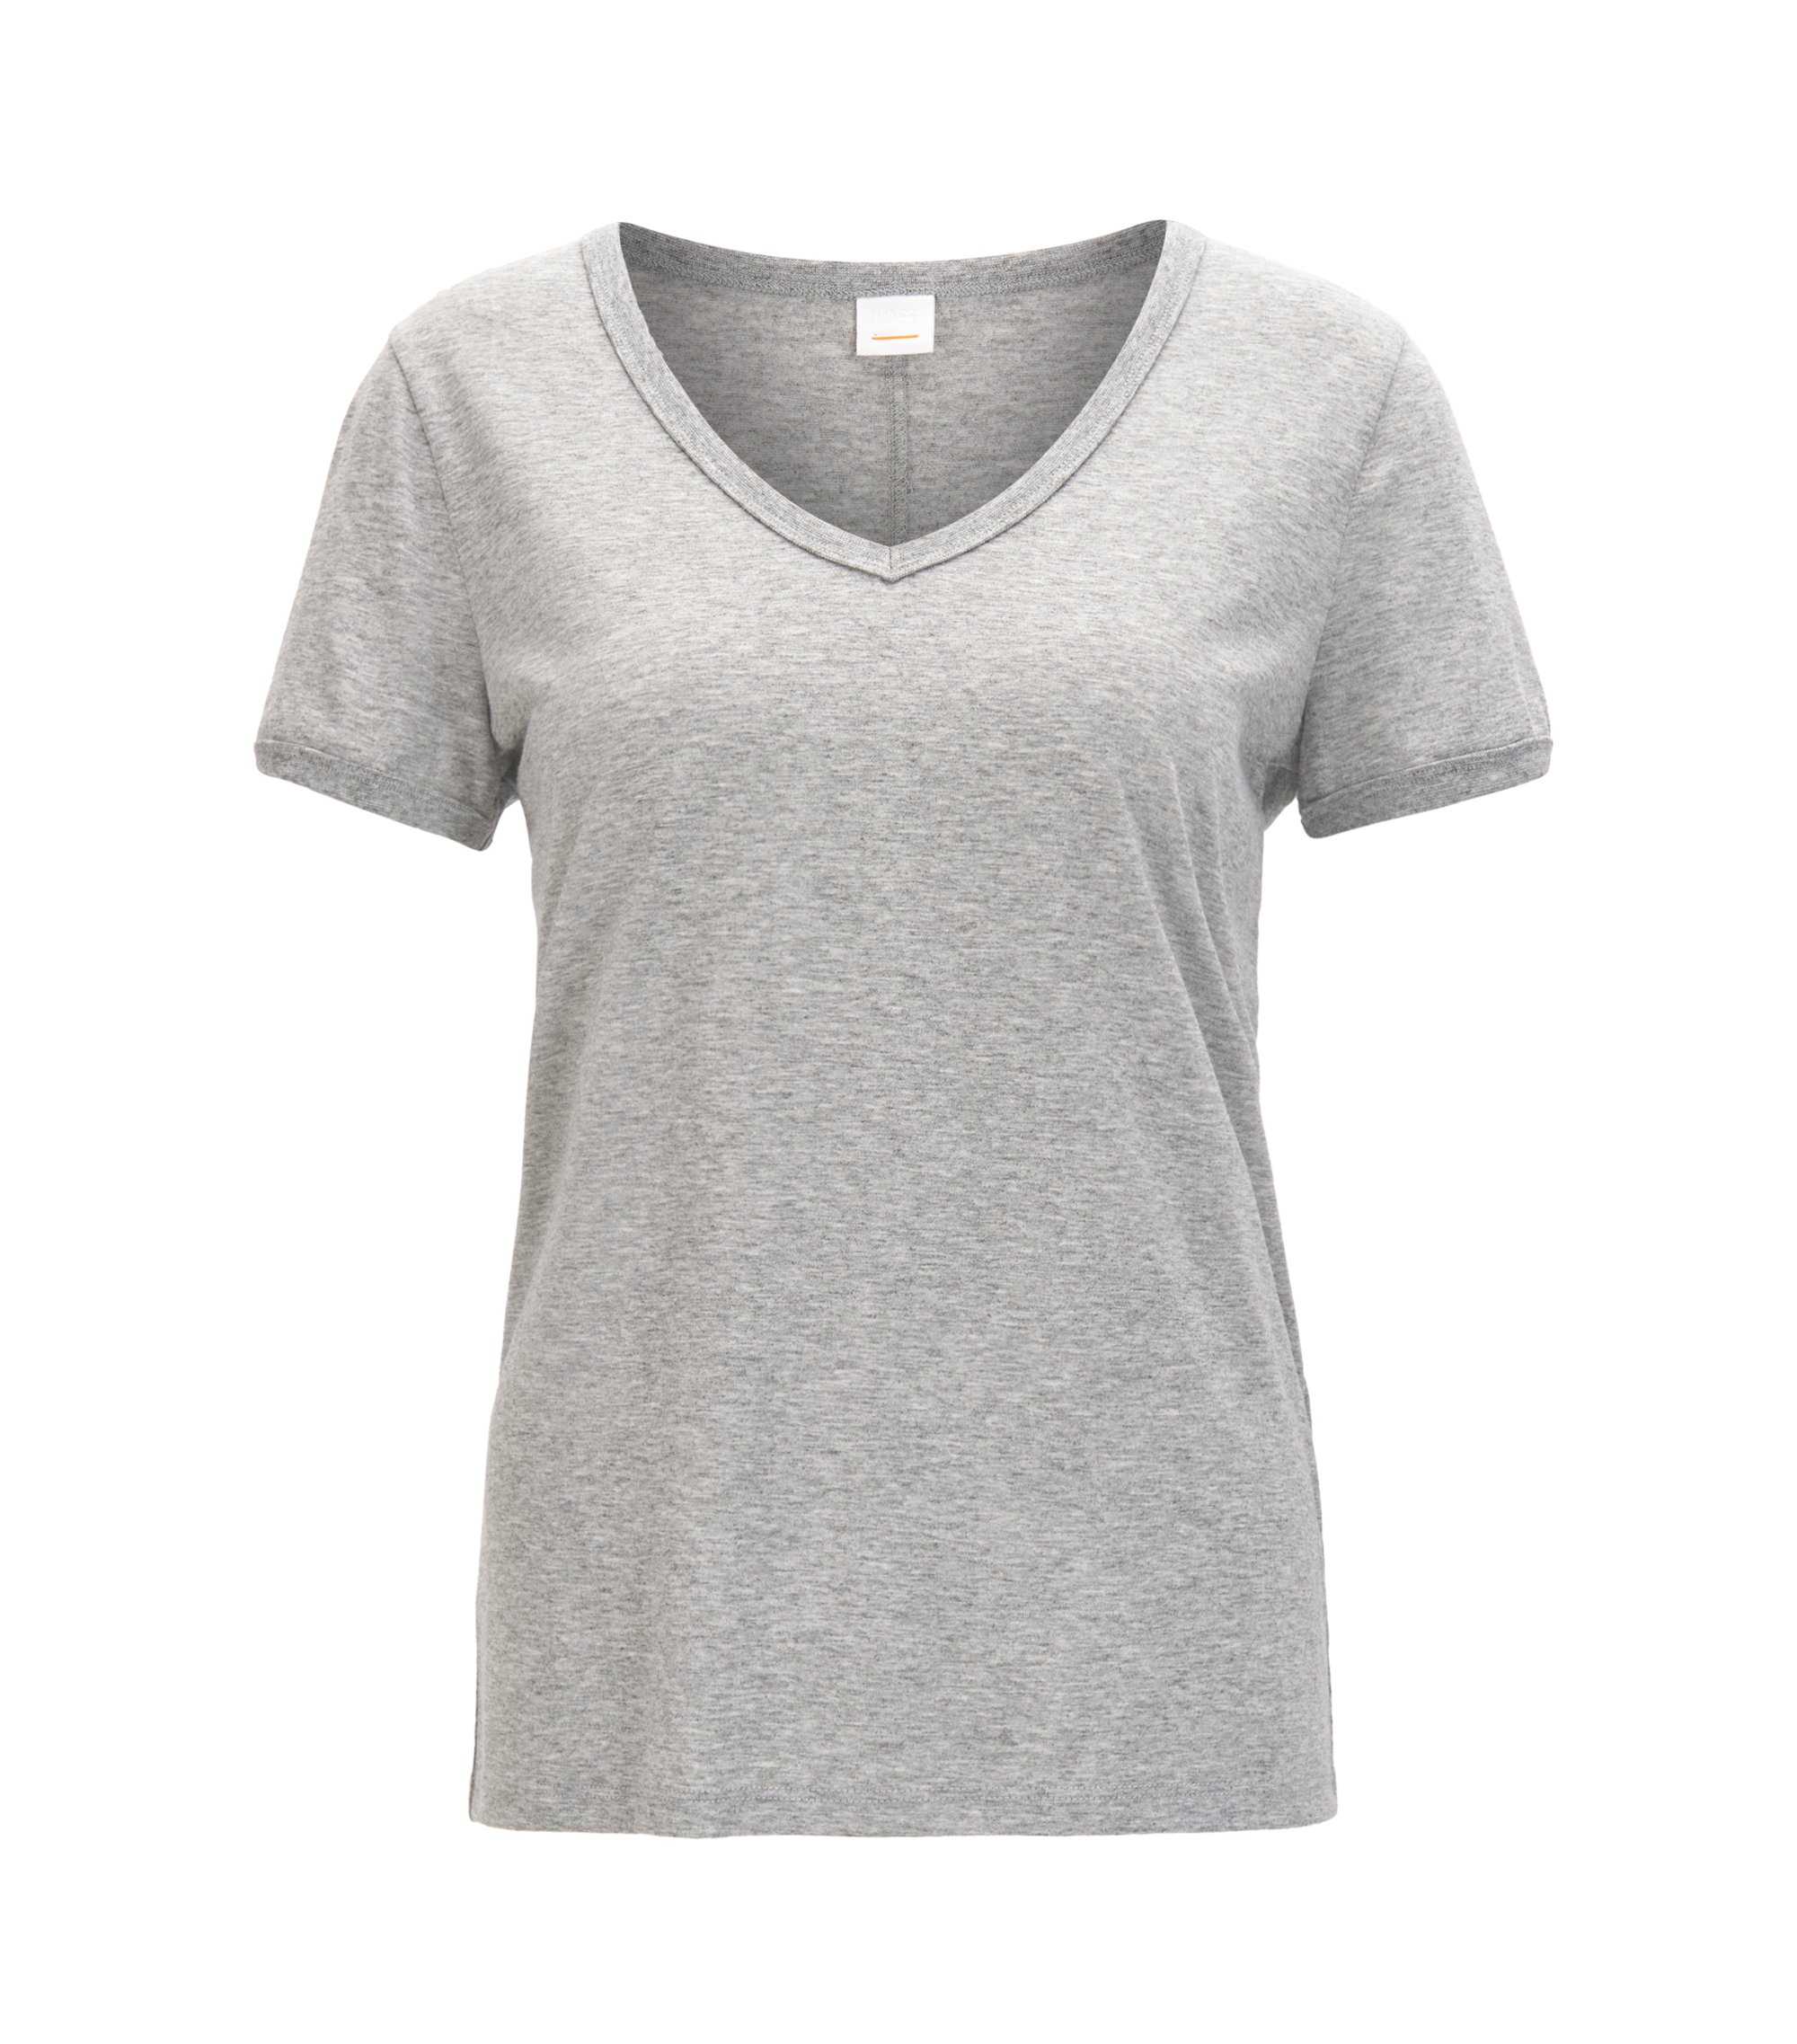 Regular-fit T-shirt van stretchmateriaal met V-hals, Zilver